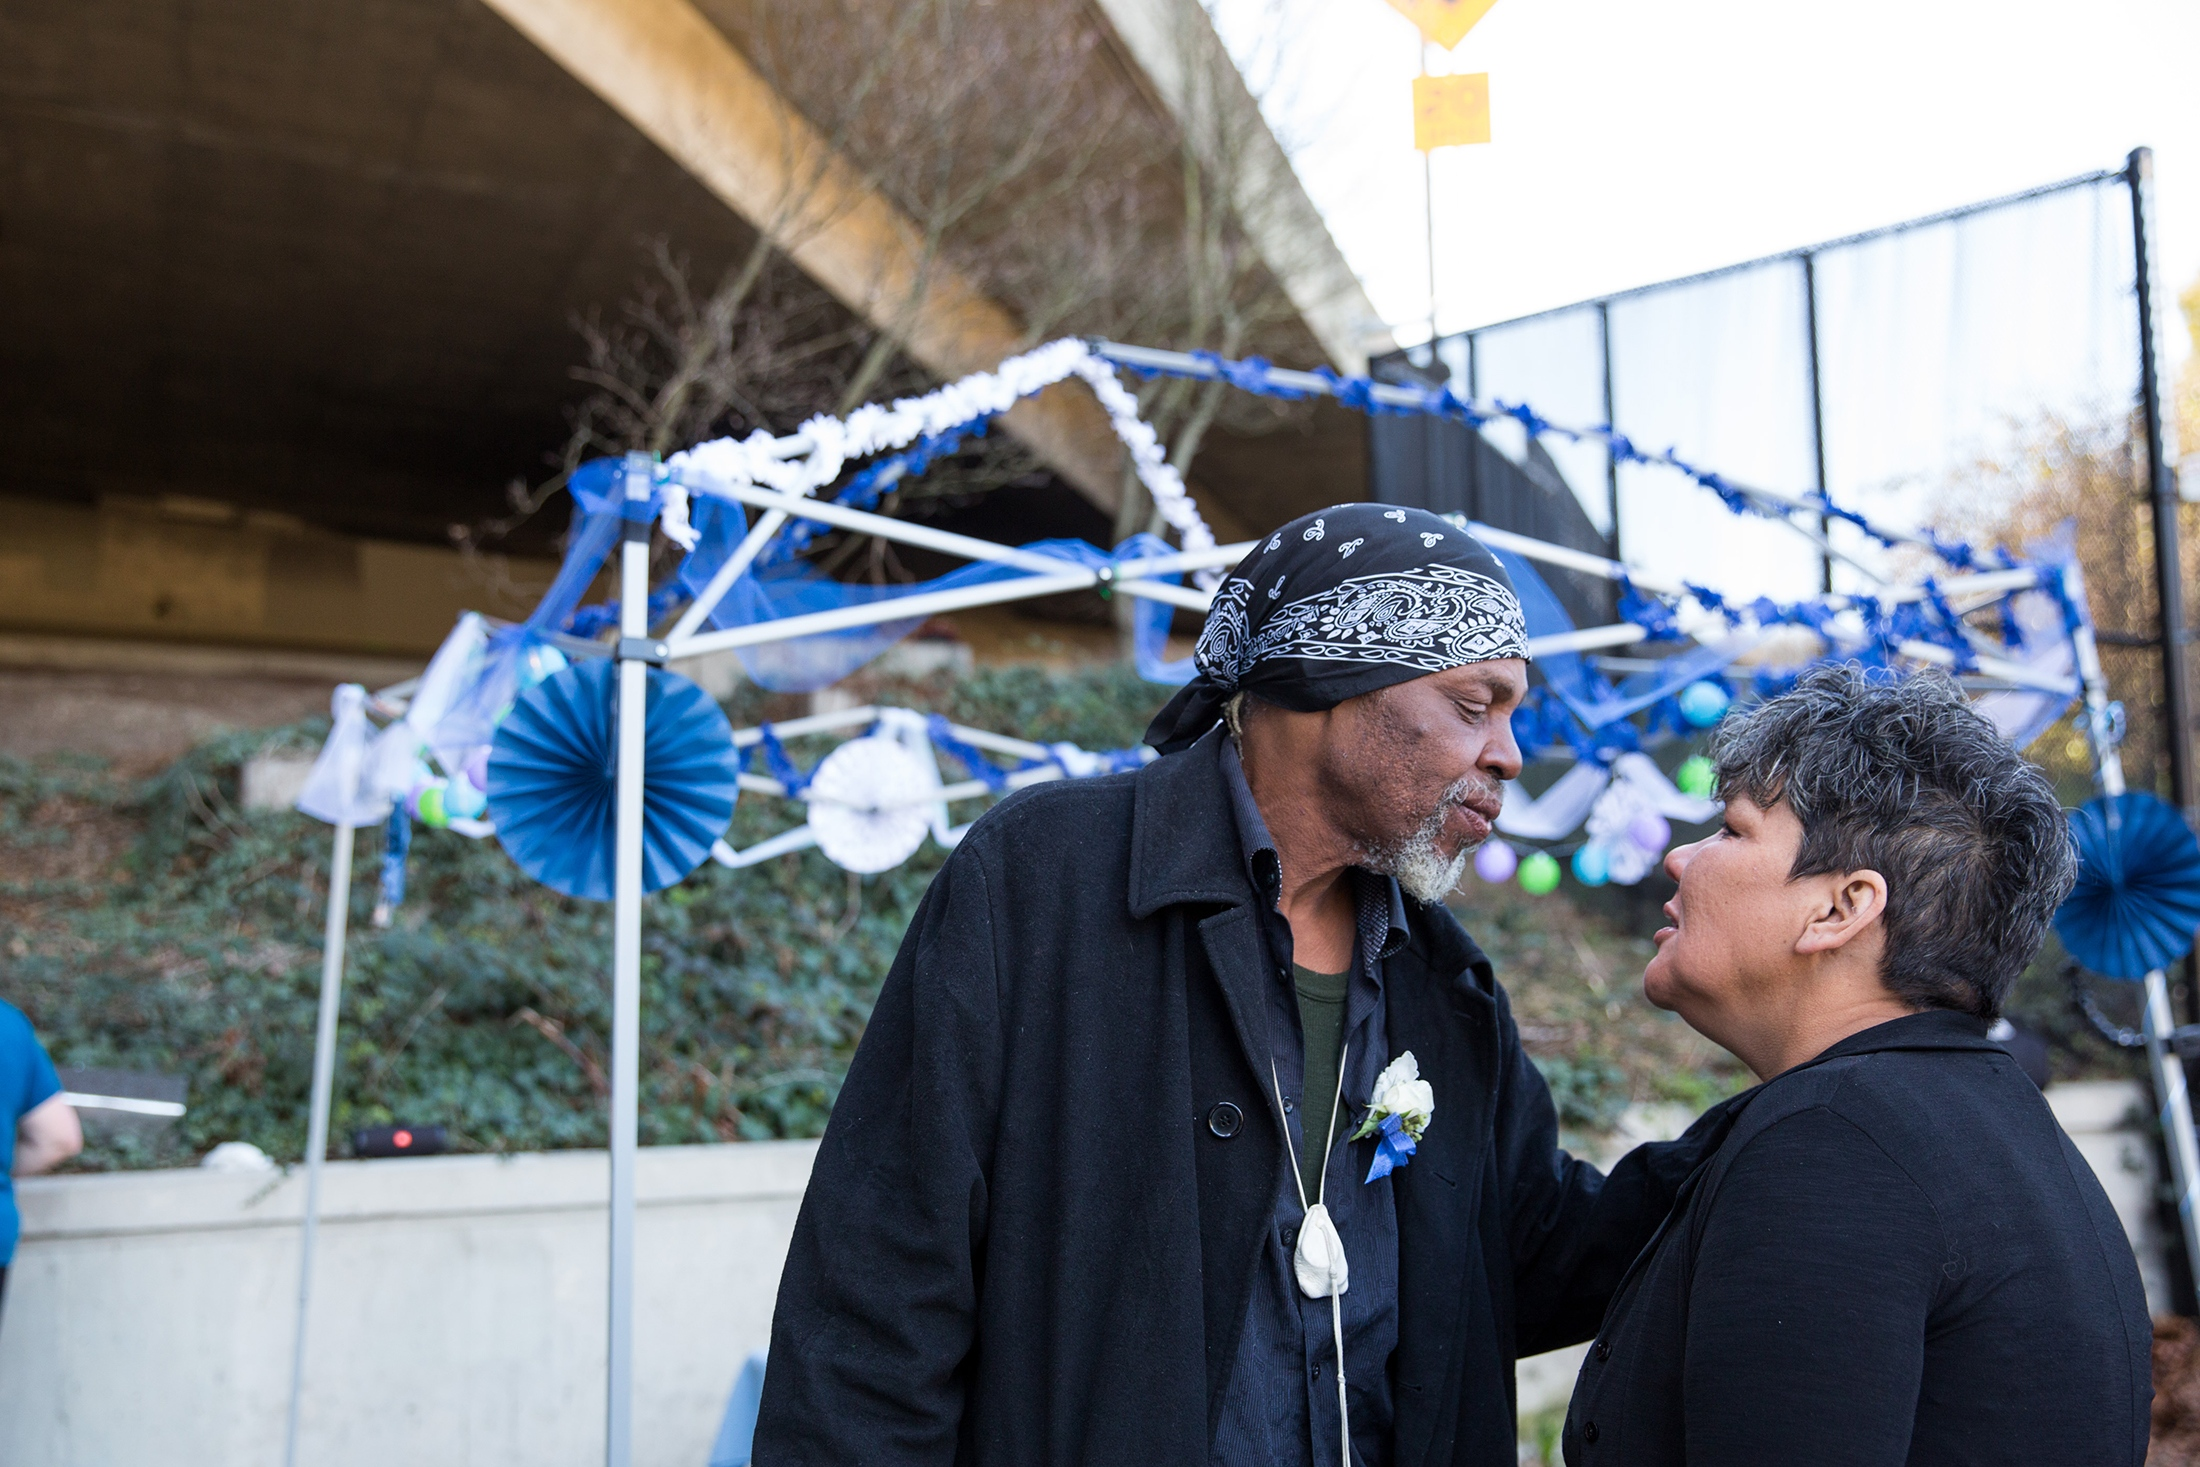 Bob J. Kitcheon and Michelle Vestal, Seattle, WA 'Homeless in Seattle and Marrying Under the Overpass' for the New York Times